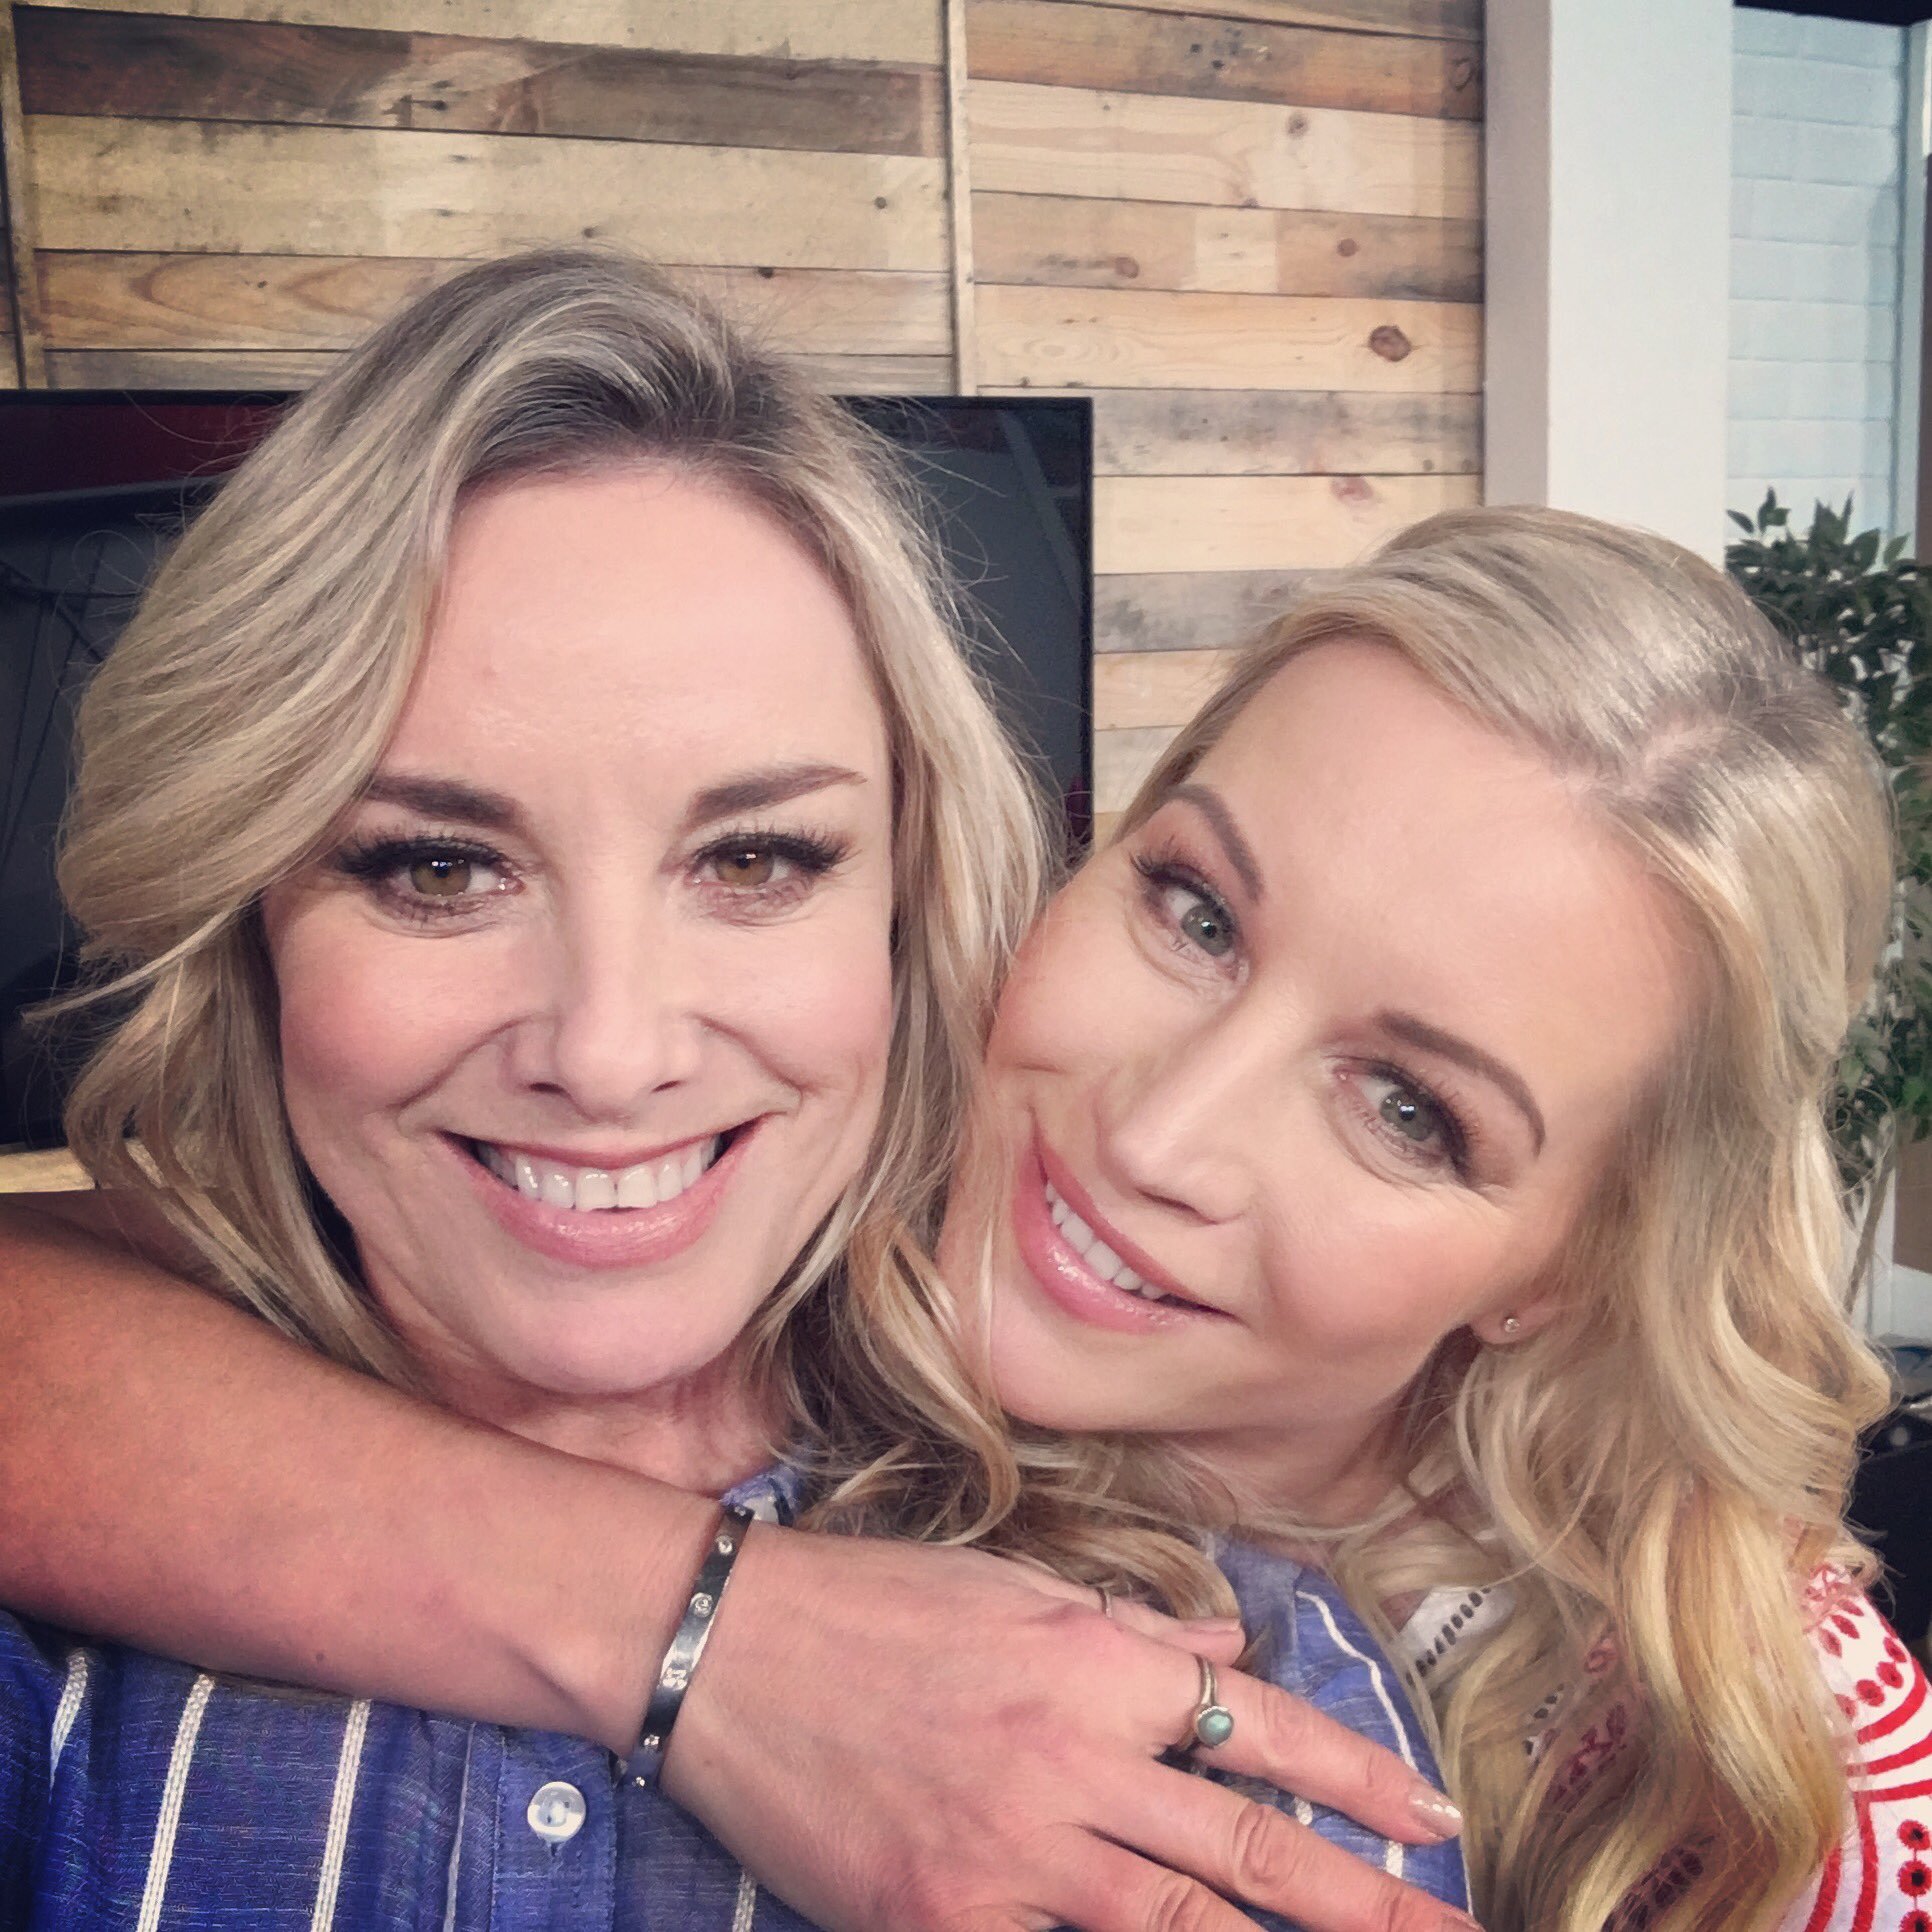 """Thanks for today @denise_vanouten @Matalan @tbseen . Always a brilliant time """"working """" with you Denise xxx https://t.co/HS2e8Sj1vQ"""